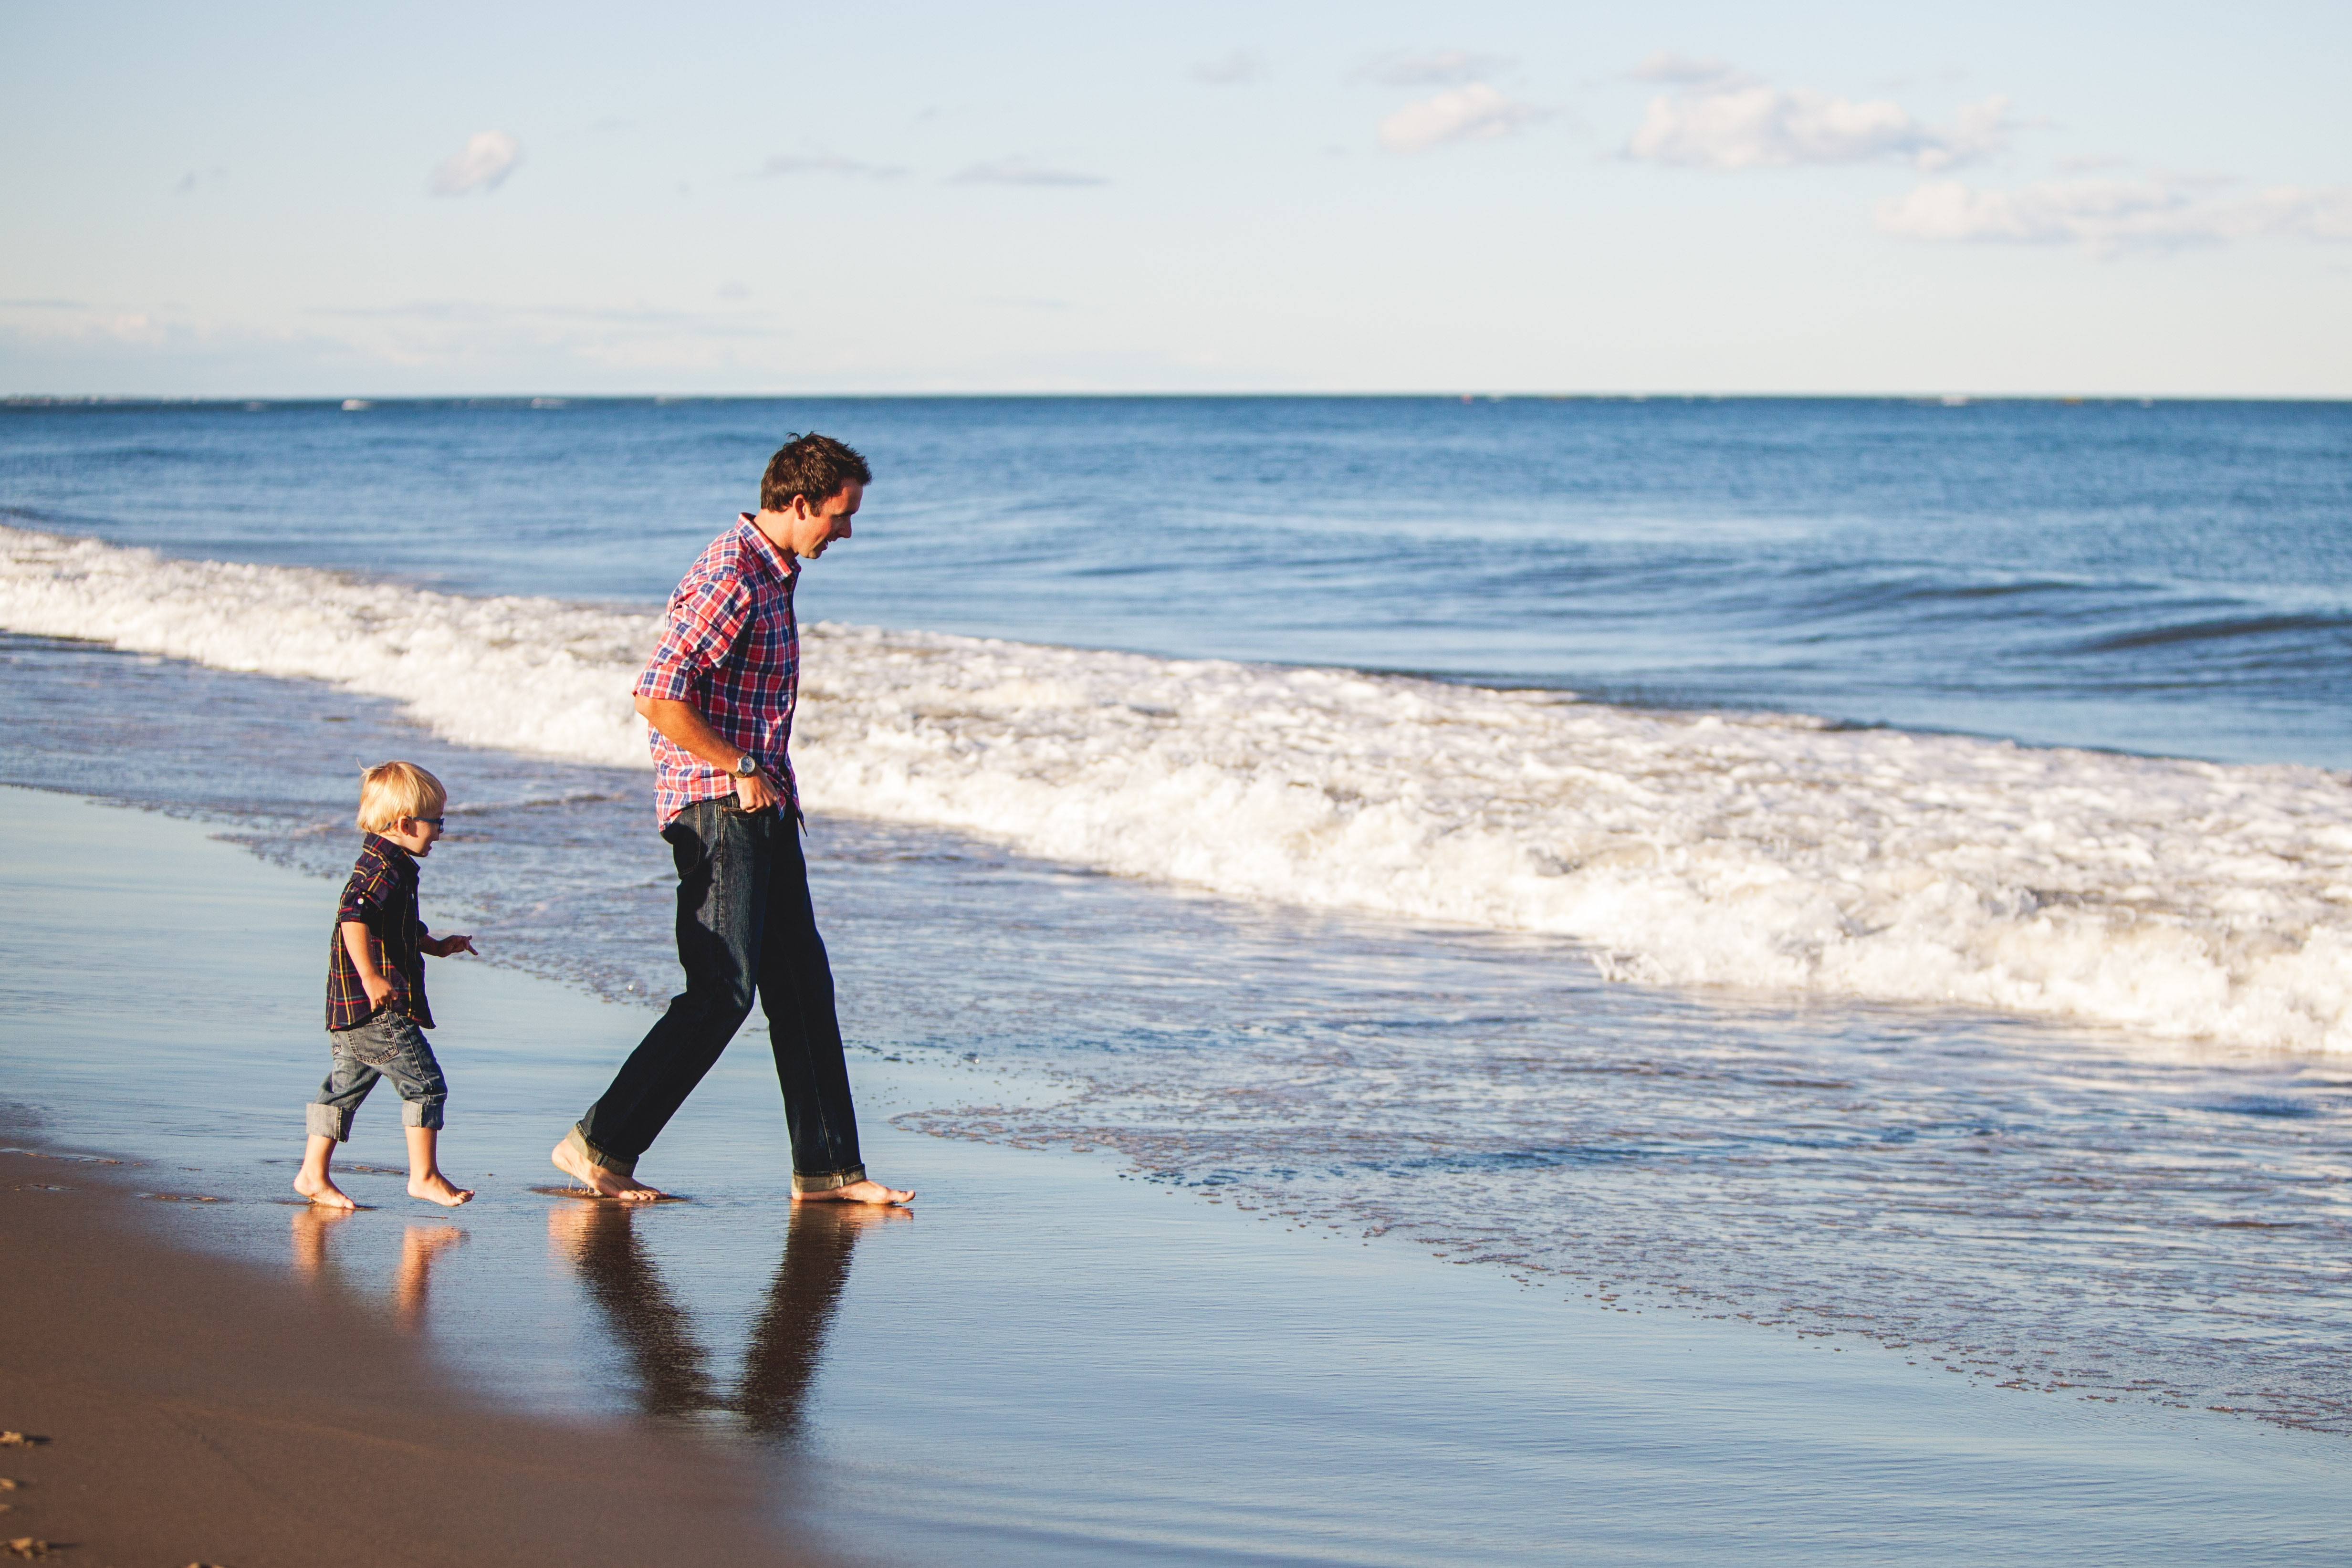 A father and son paddle in the waves at the beach